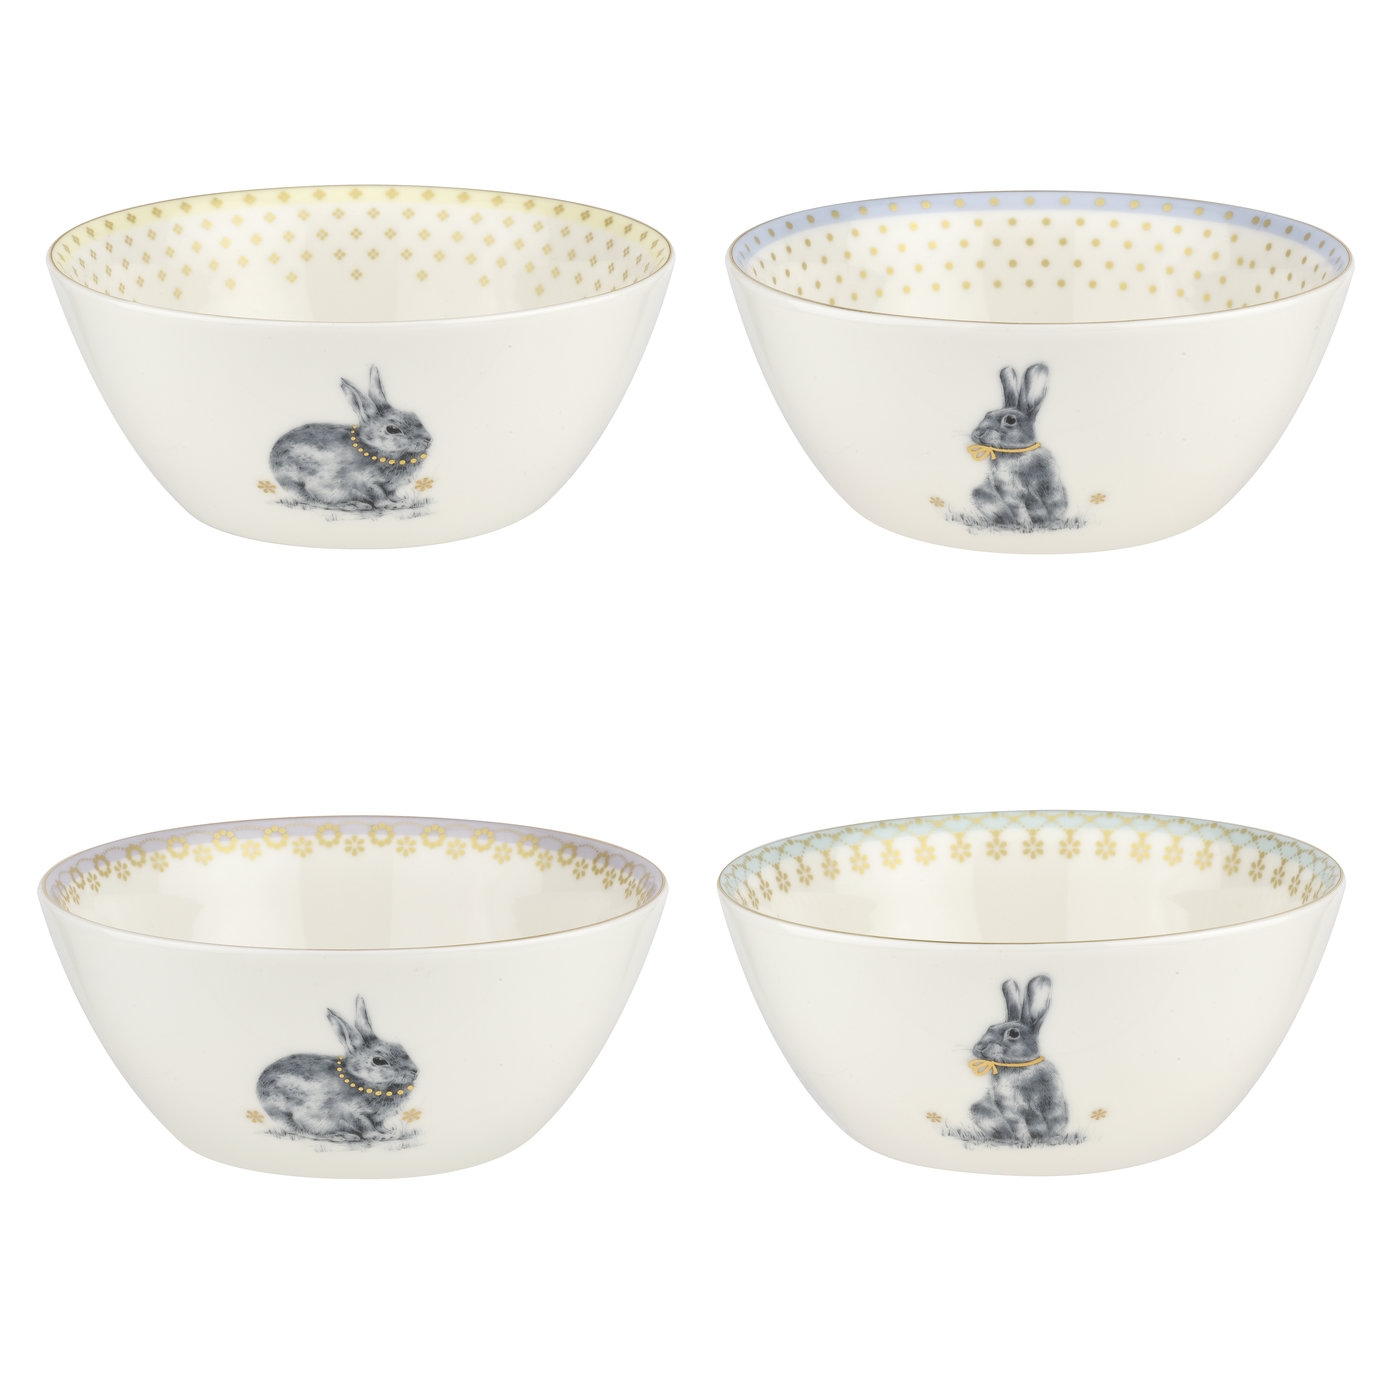 Spode Meadow Lane 6 Inch Cereal Bowl Set of 4 image number 0